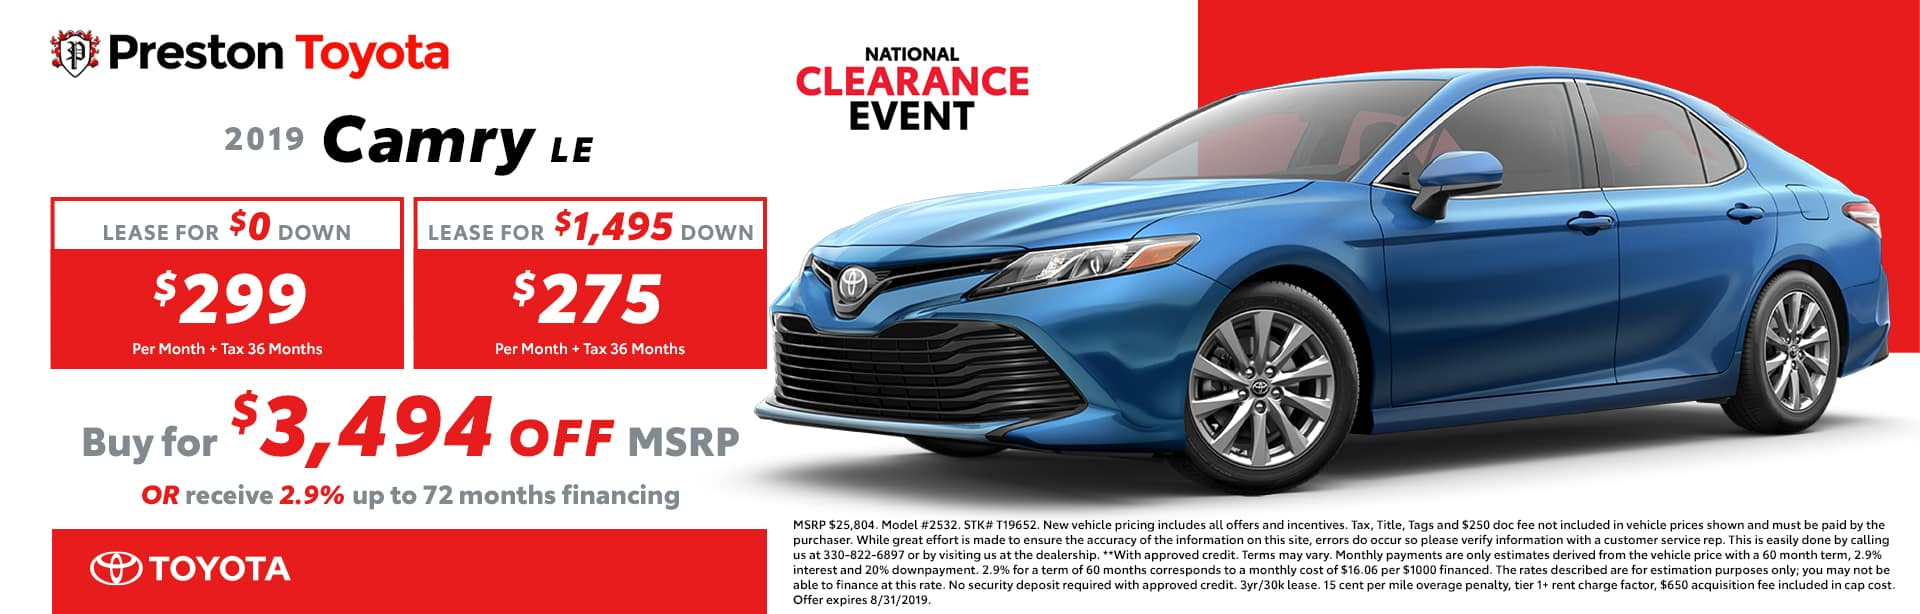 August special on the 2019 Camry